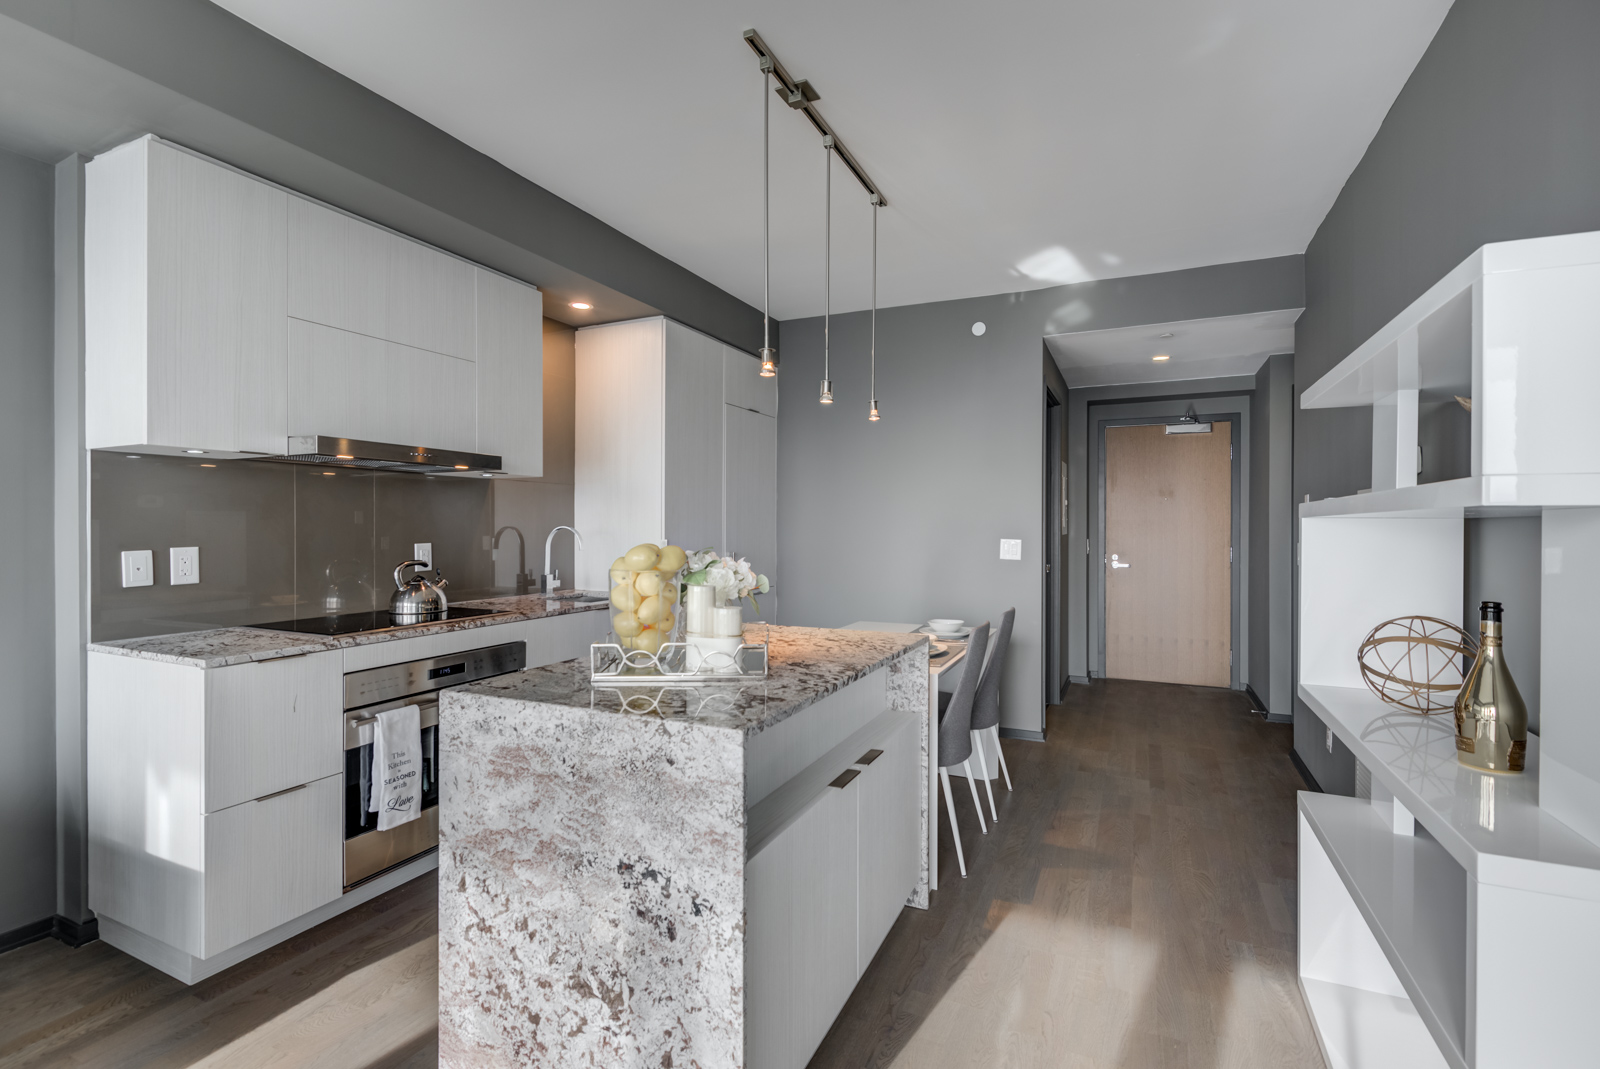 Modern kitchen of 1 Bloor St E Unit 4305 with granite counters, island, pendant lights and wooden cabinets.